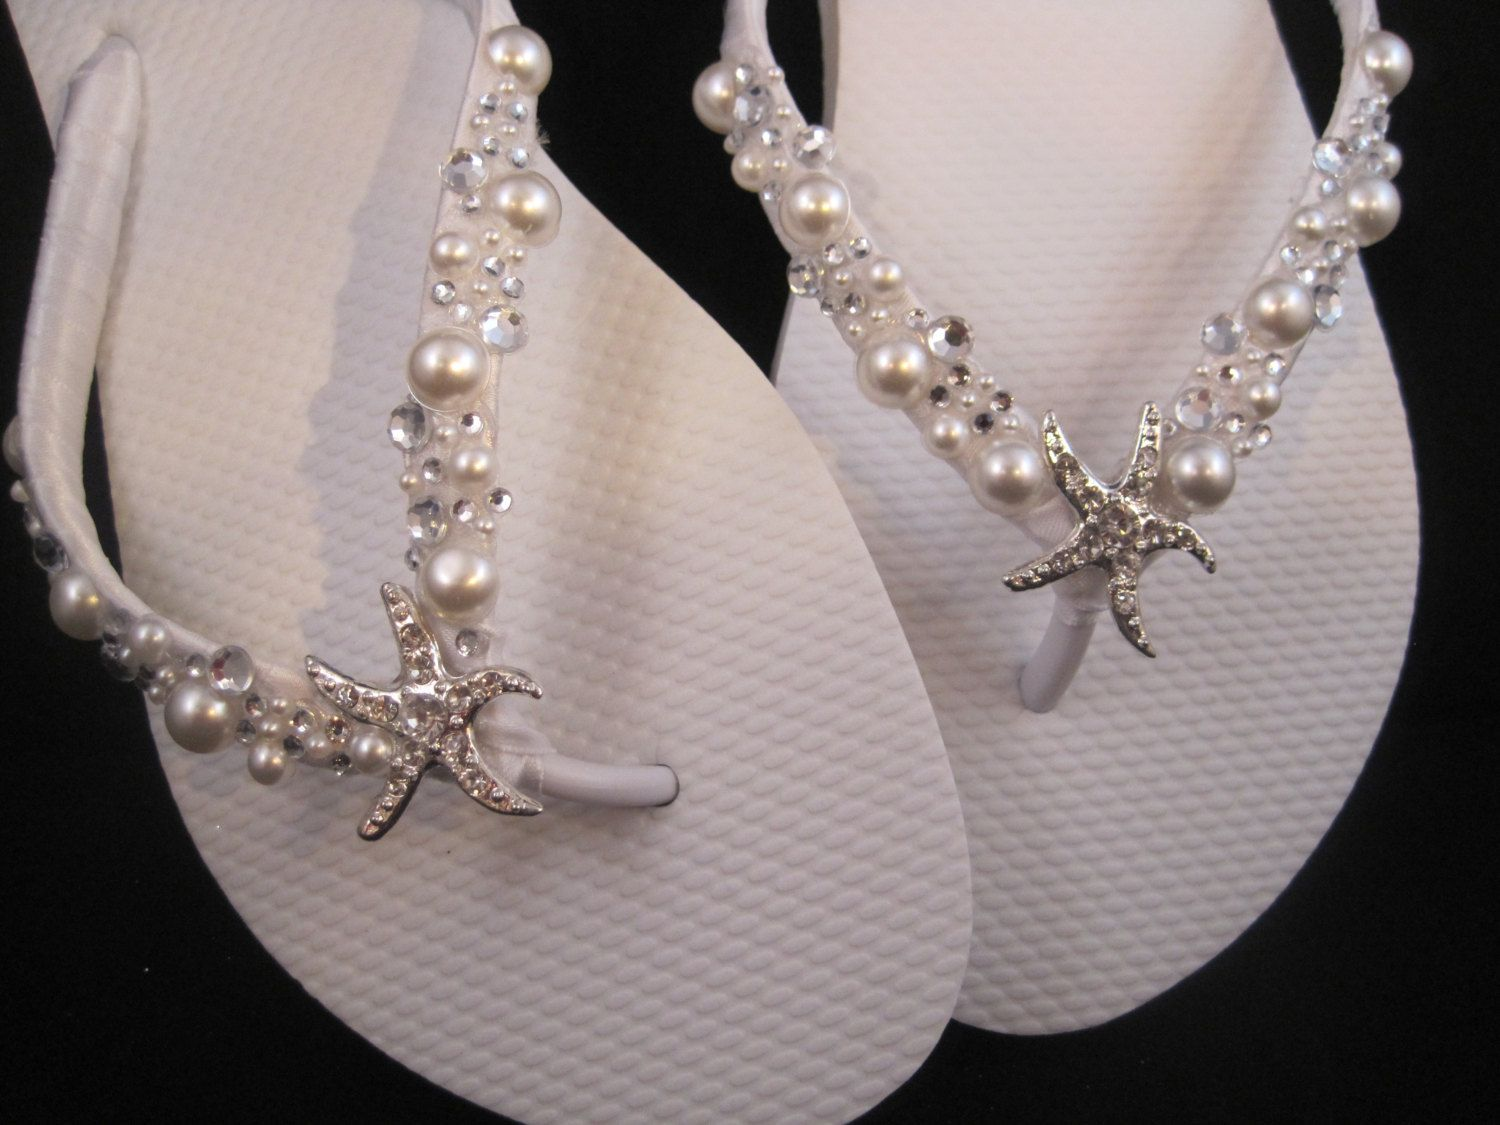 65cdcdc4ae47 NEW 2013 So Sweet Bride Shoshanna Starfish Pearl and Swarovski Crystal  Bridal Wedding Flip Flops.  34.95